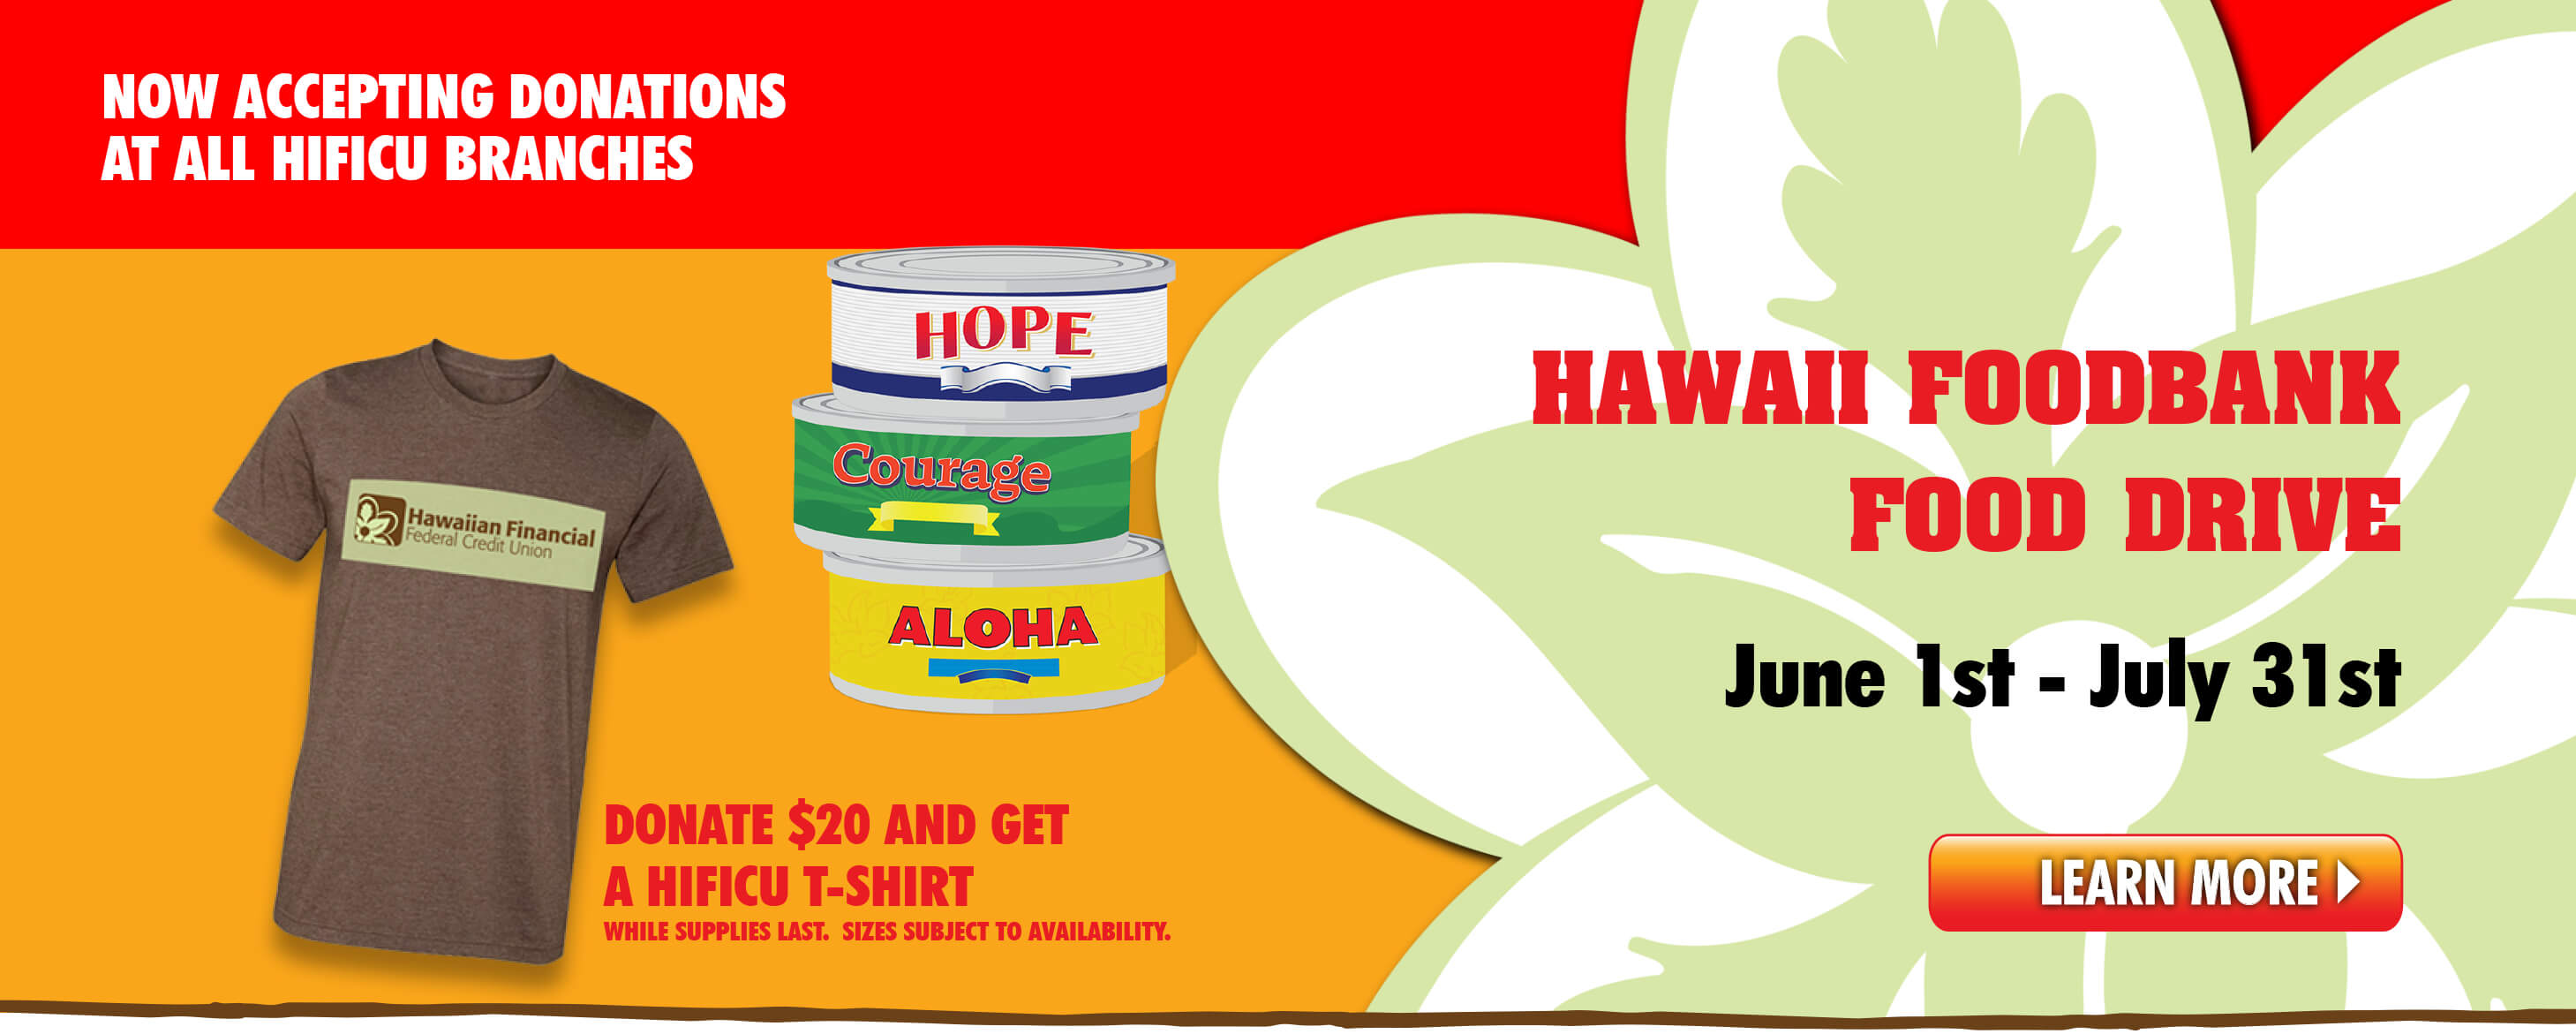 Starting June 1st through July 31st, HIFICU branches will be donation collection centers for Hawaii FoodBank!